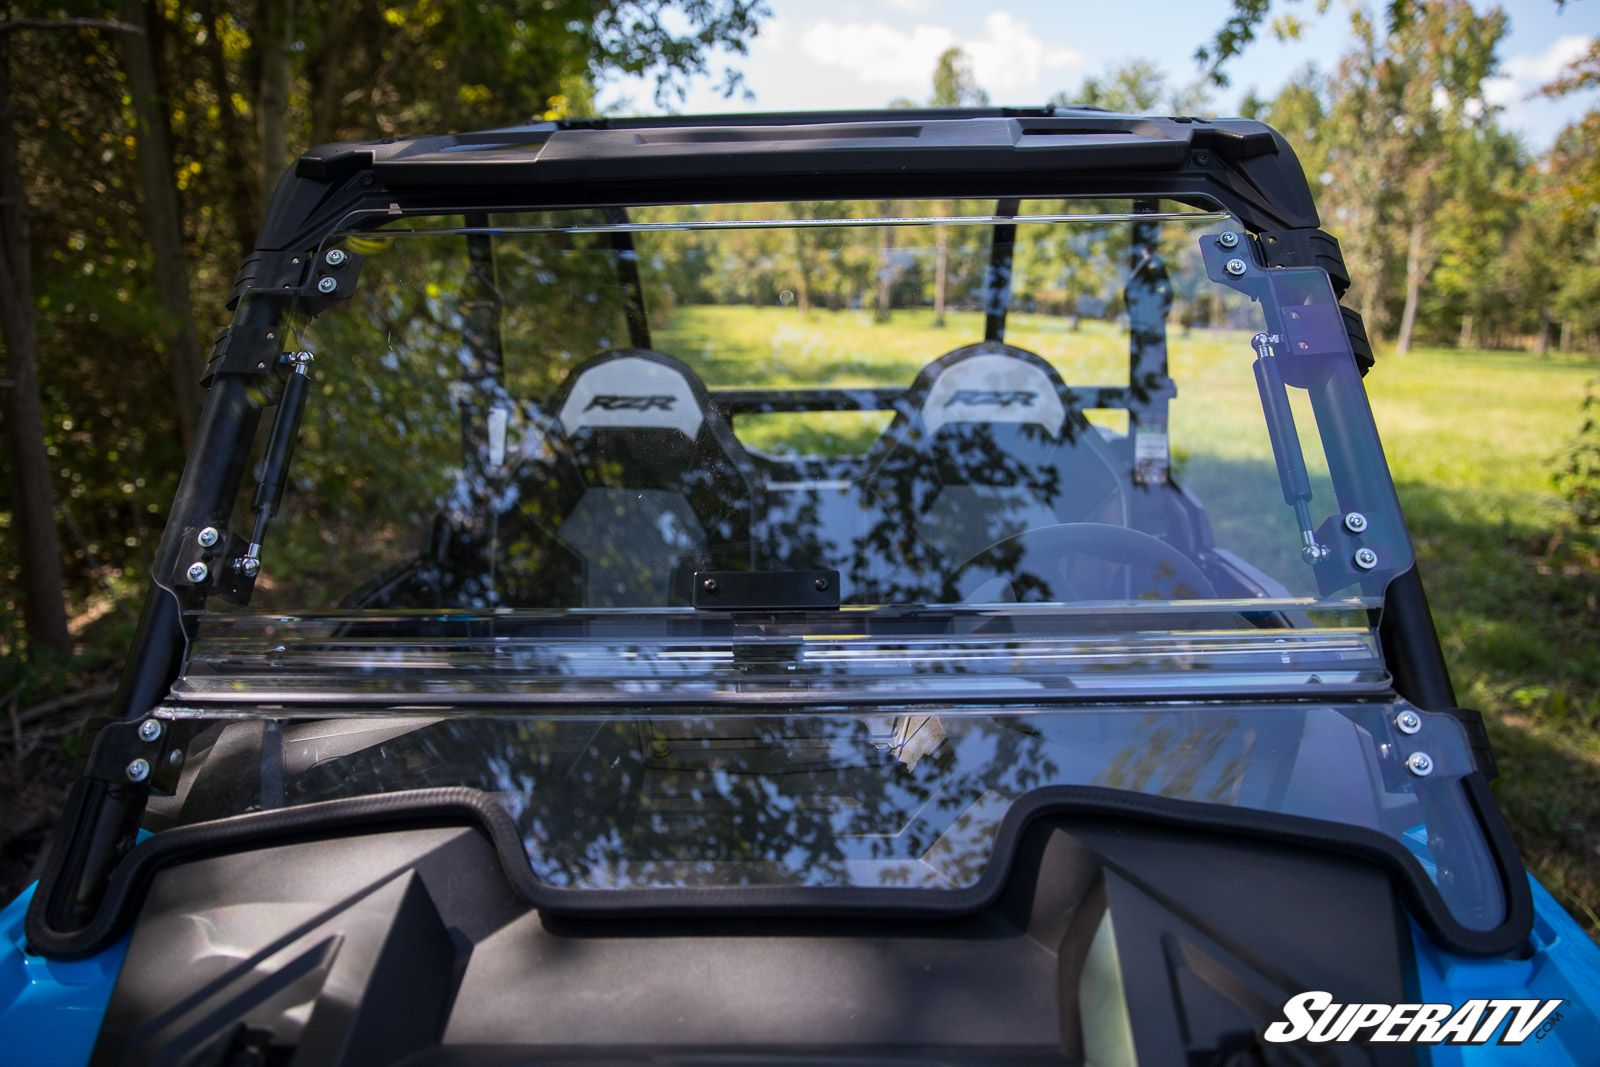 2019+ Polaris RZR XP 1000 & XP Turbo Scratch Resistant Flip Windshield